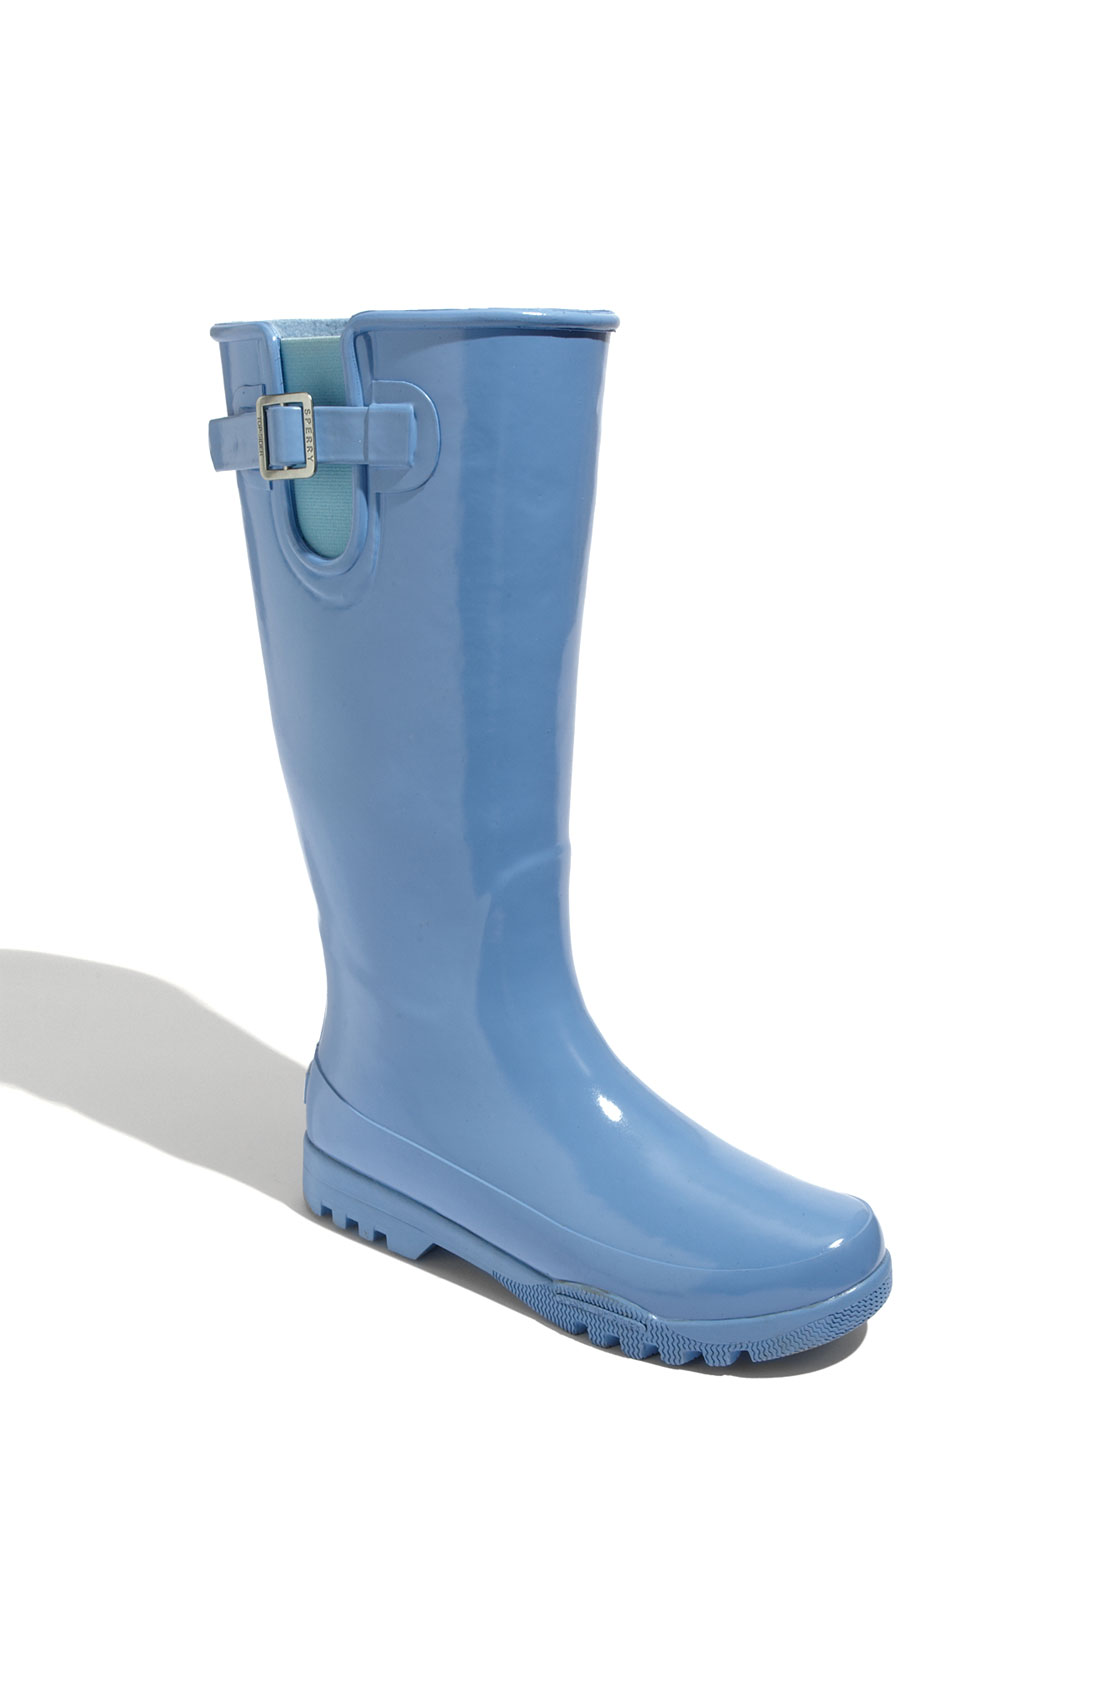 Creative Women Fashion Knee High Rain Boots Ladies Tall Riding Water Boots Rain